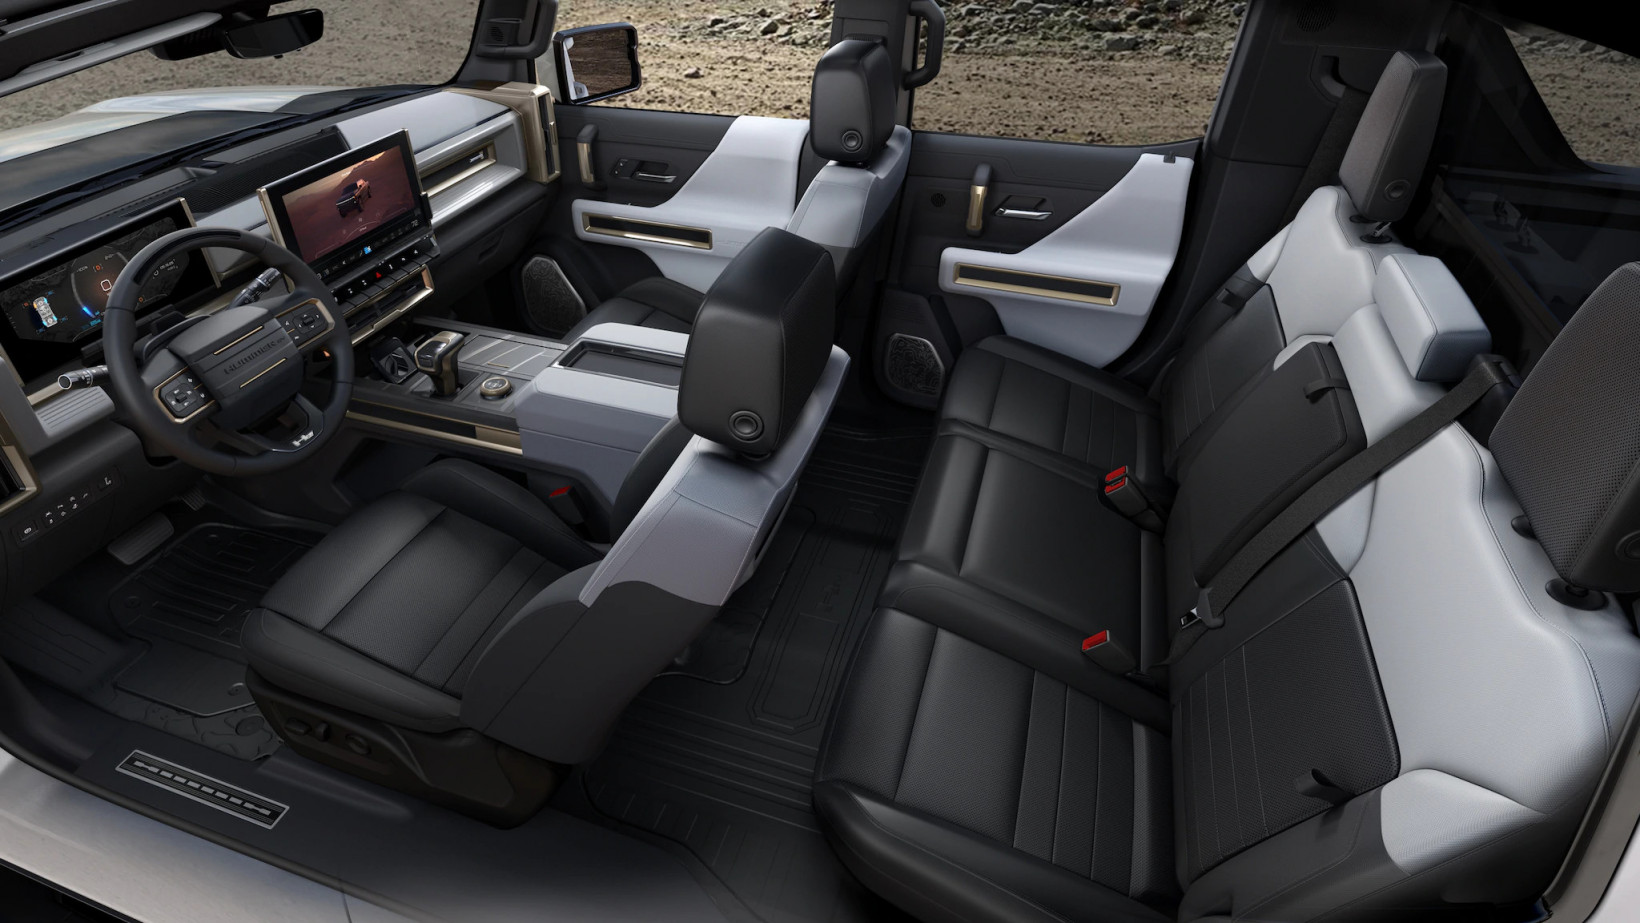 hummer, gmc, ev, future, interior